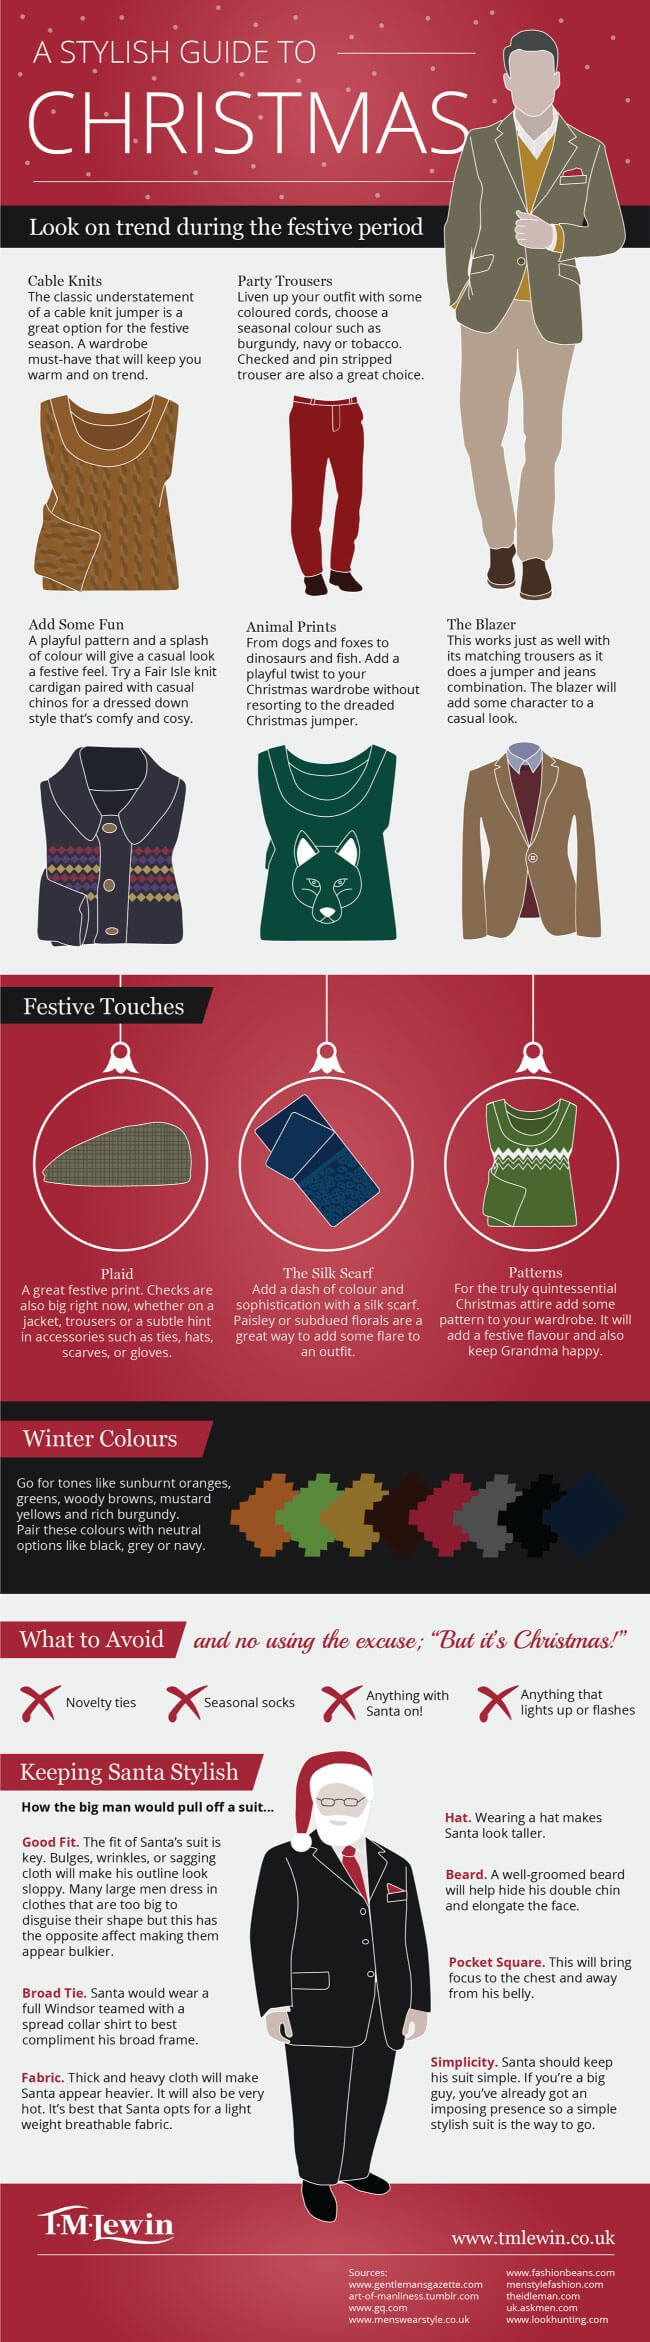 Image titled 'Stylish Guide to Christmas Clothing for Men's'